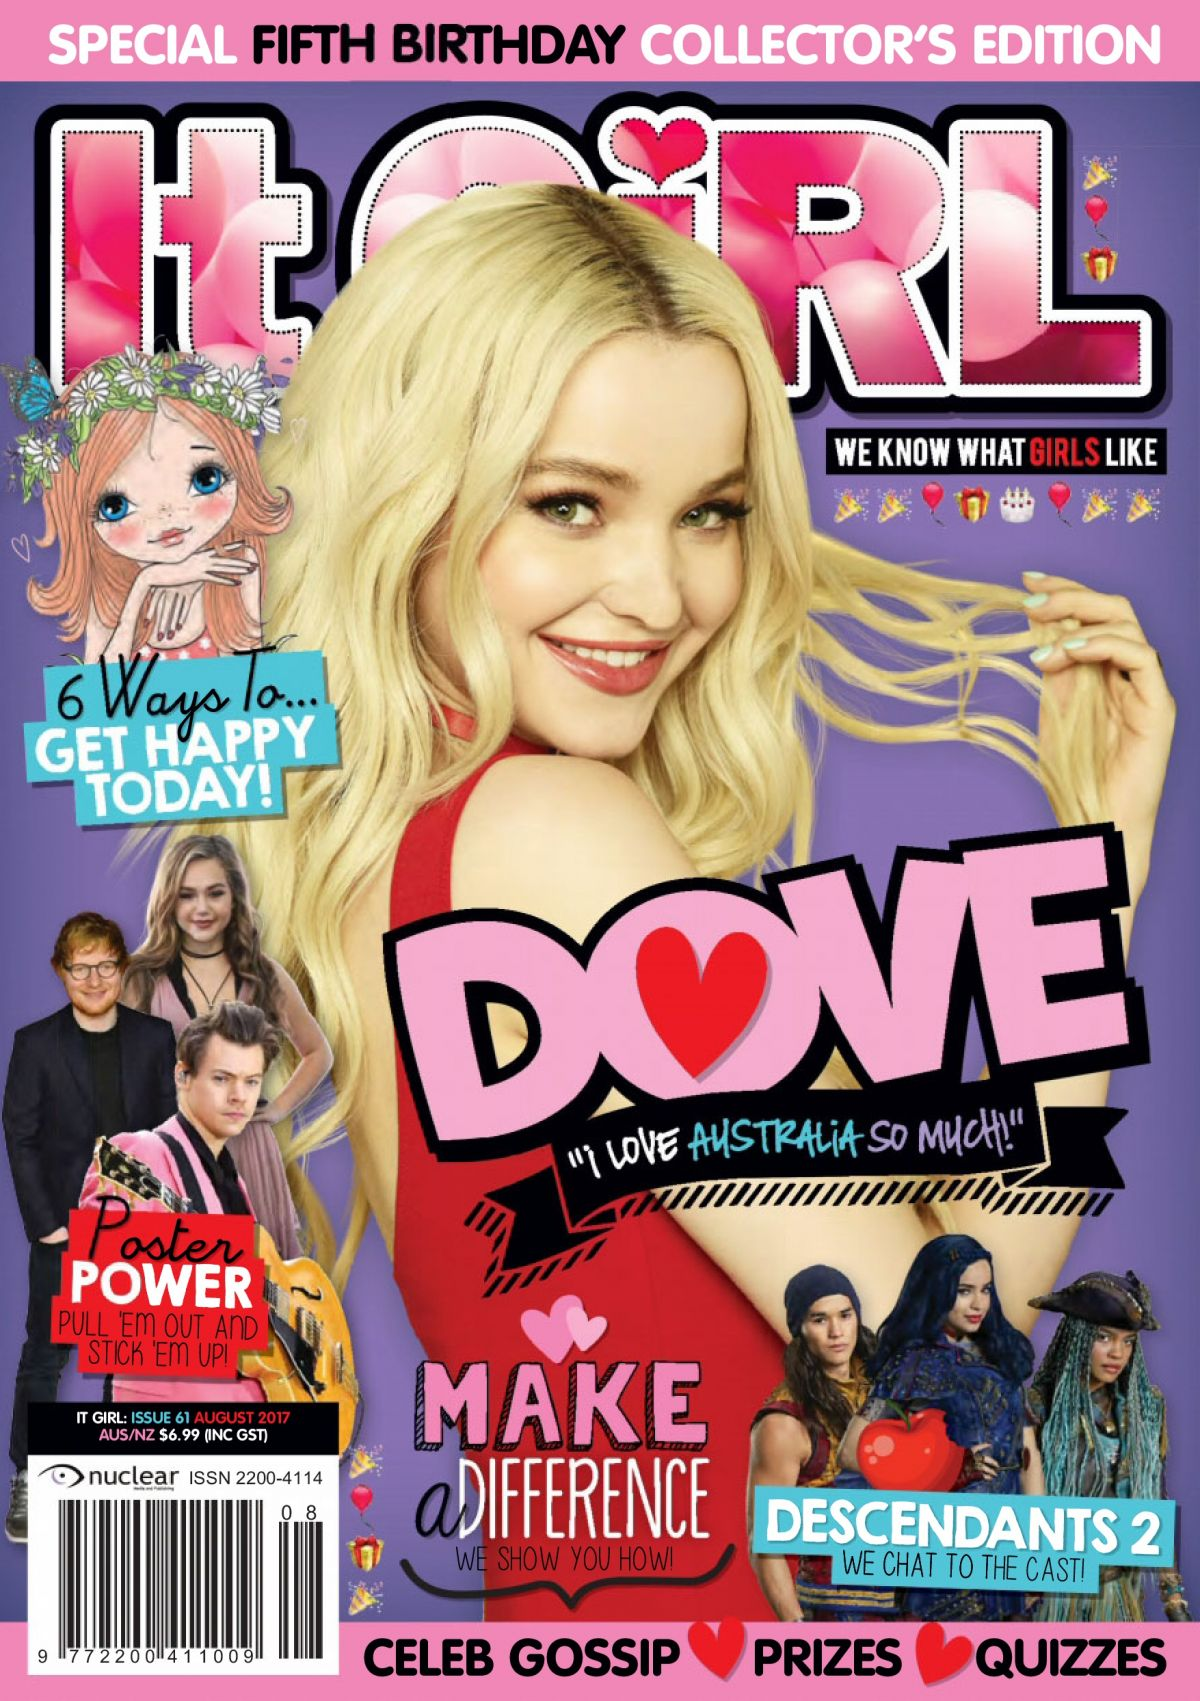 DOVE CAMERON in IT Girl Magazine, August 2017